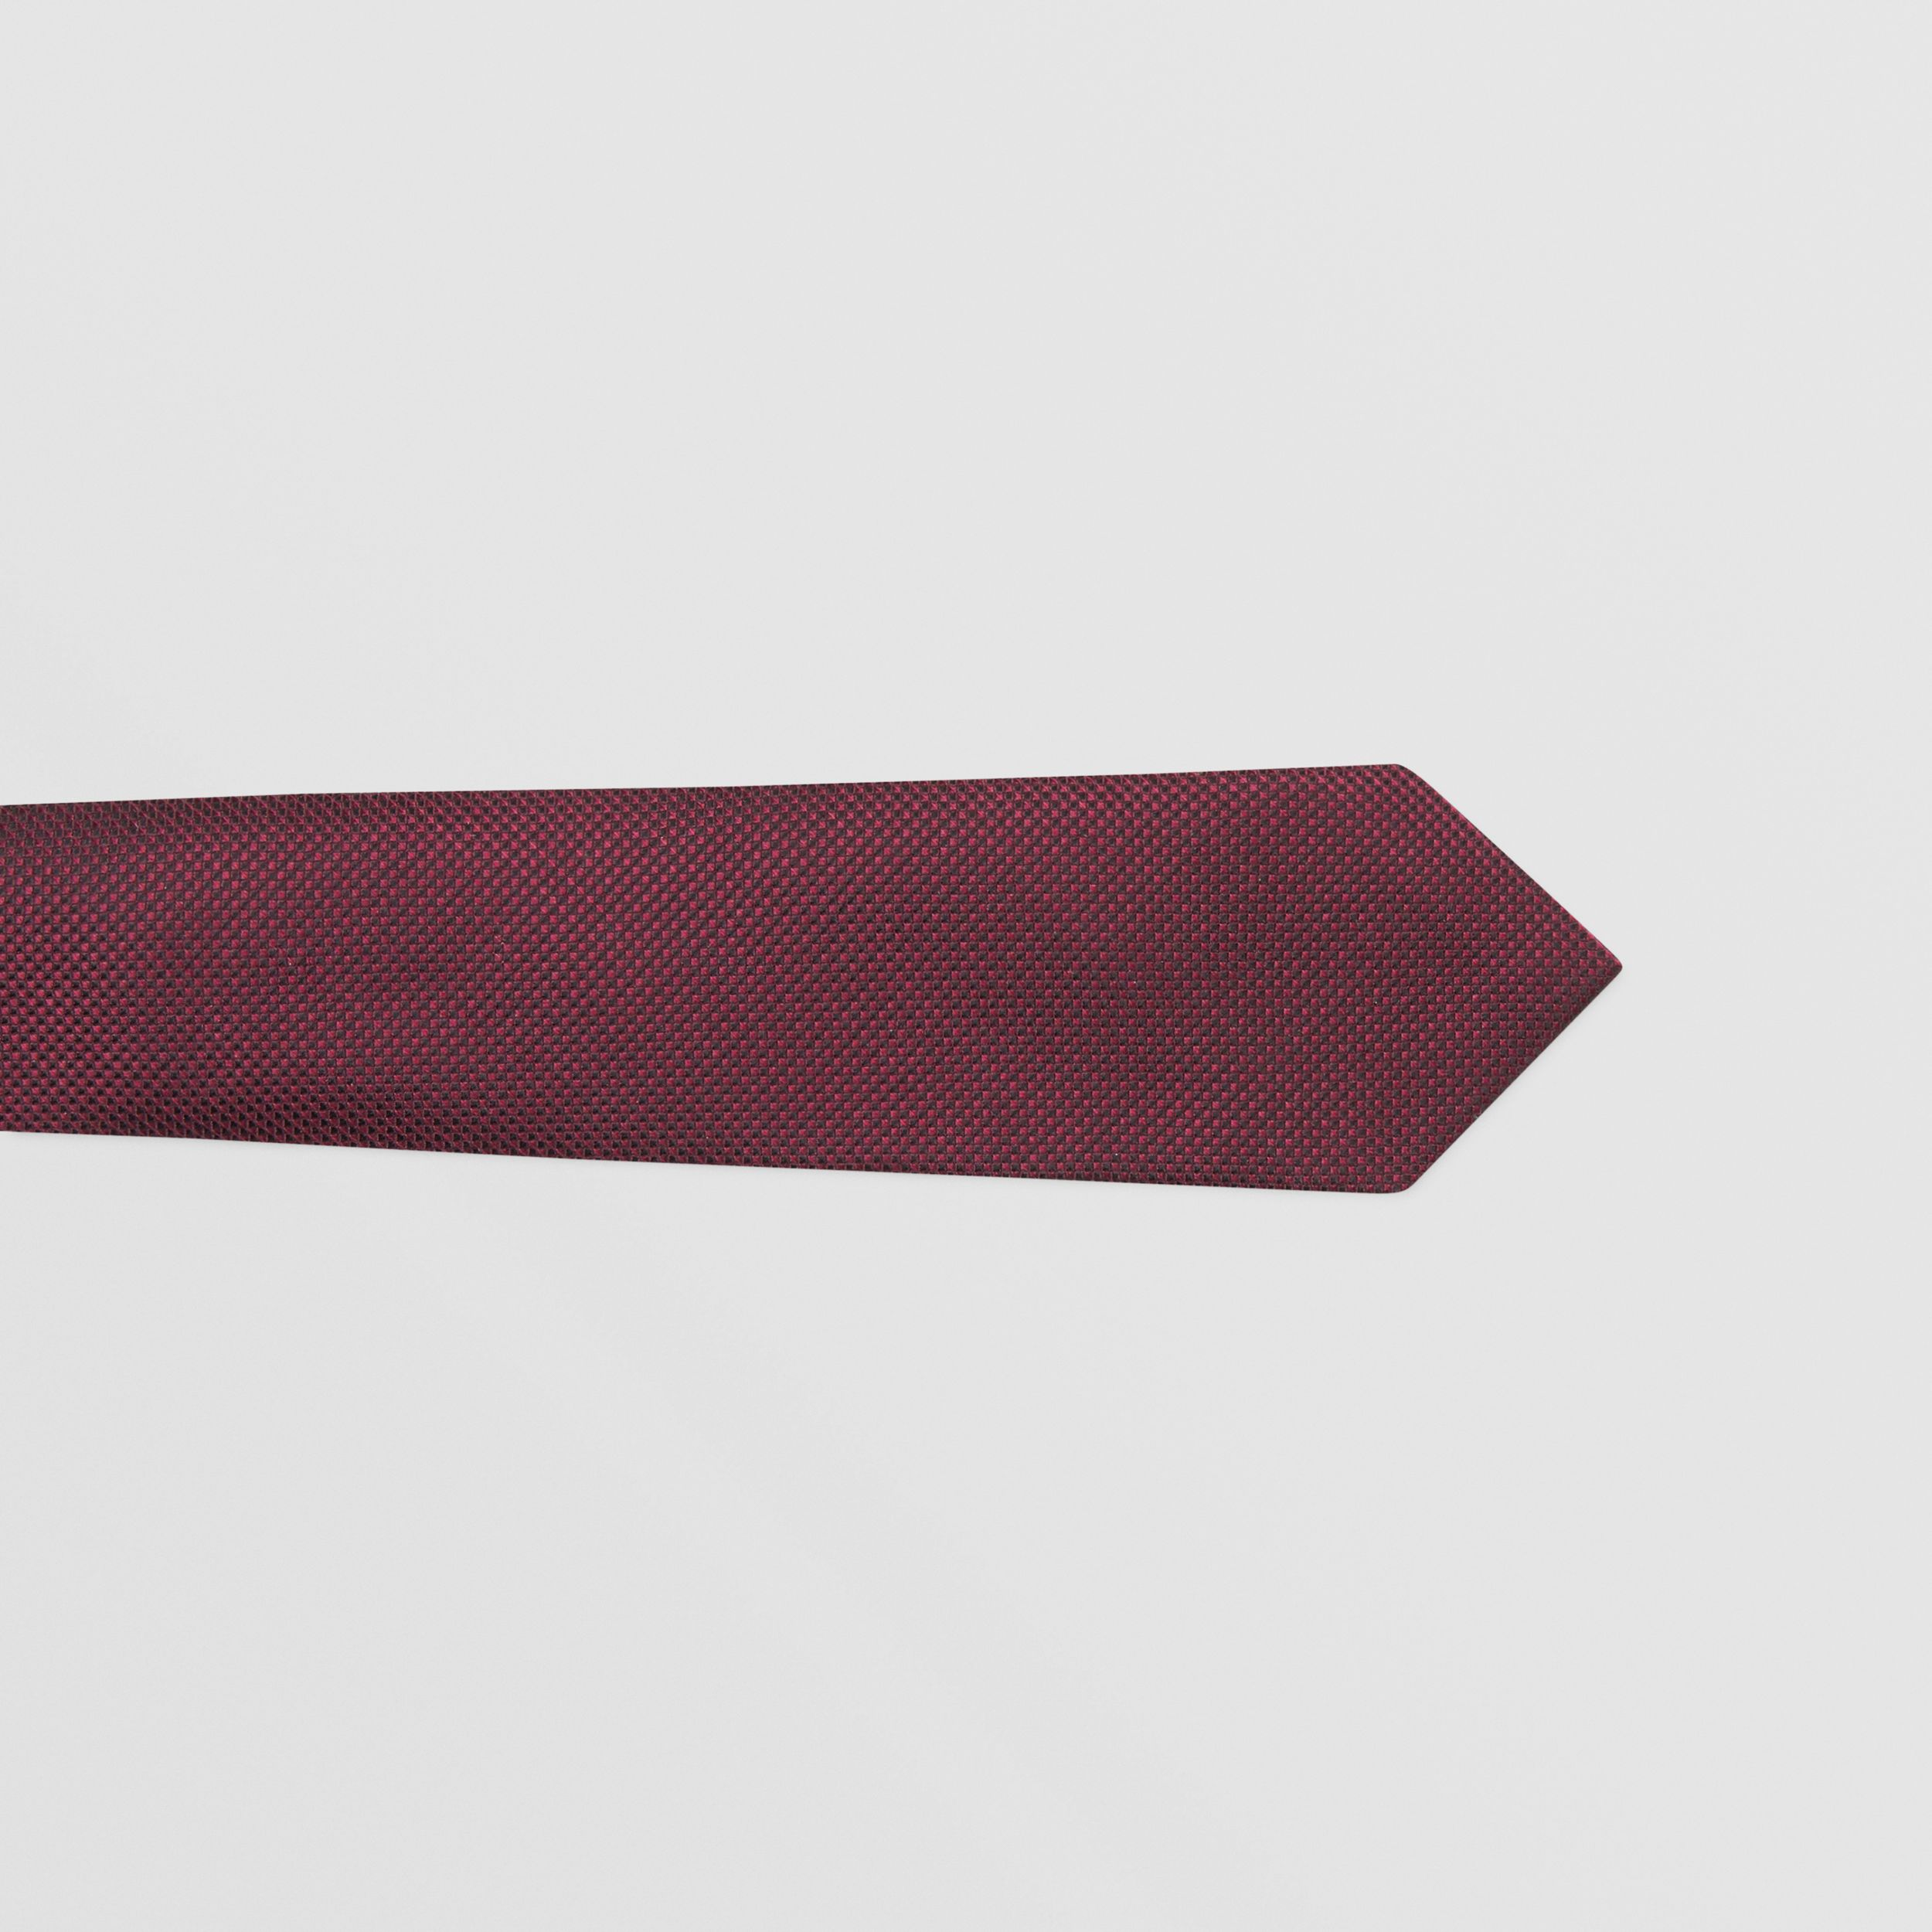 Classic Cut Woven Silk Tie in Dark Plum - Men | Burberry - 2